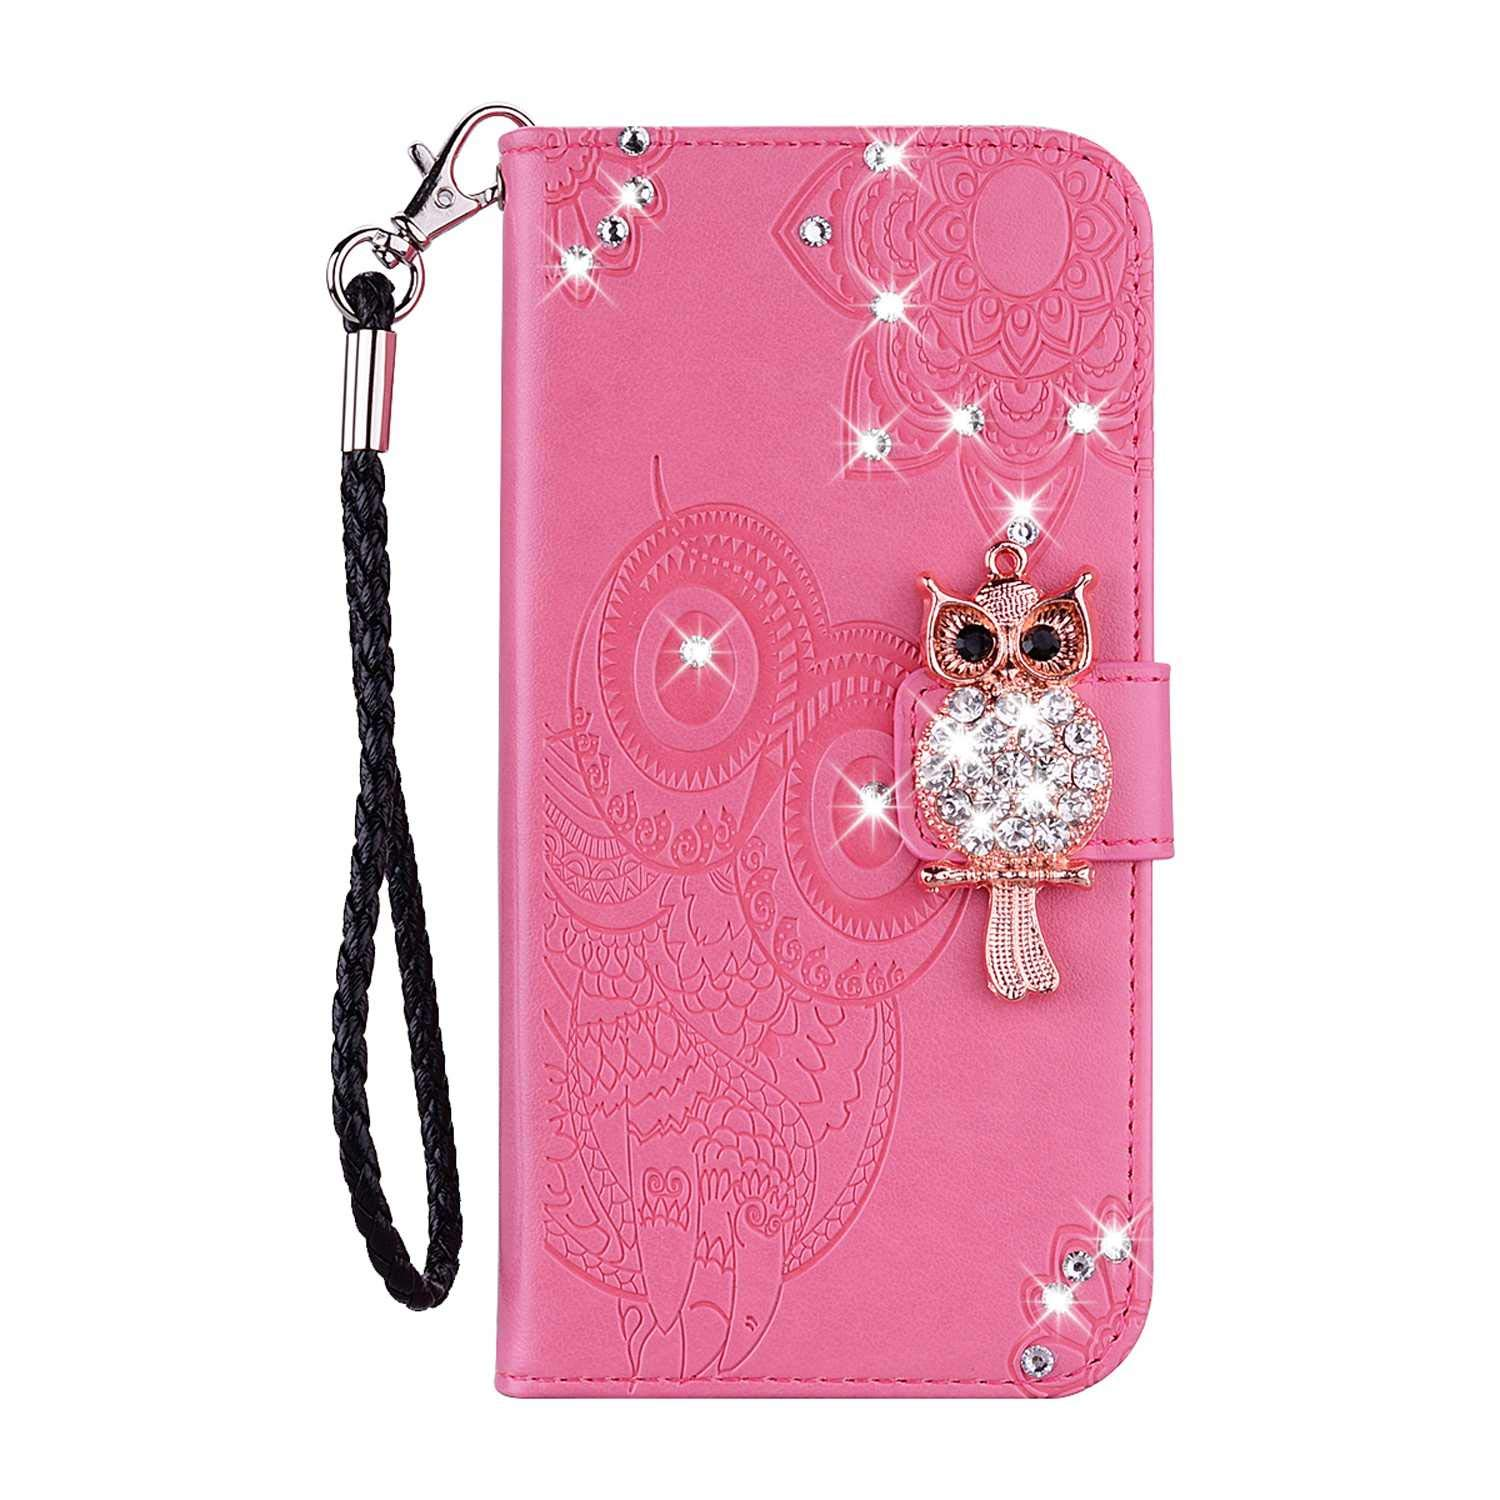 Bear Village Galaxy M10 Case, Leather Case with Wrist Strap and Credit Card Slot, Owl Magnetic Closure Shockproof Cover for Samsung Galaxy M10, Pink by Bear Village